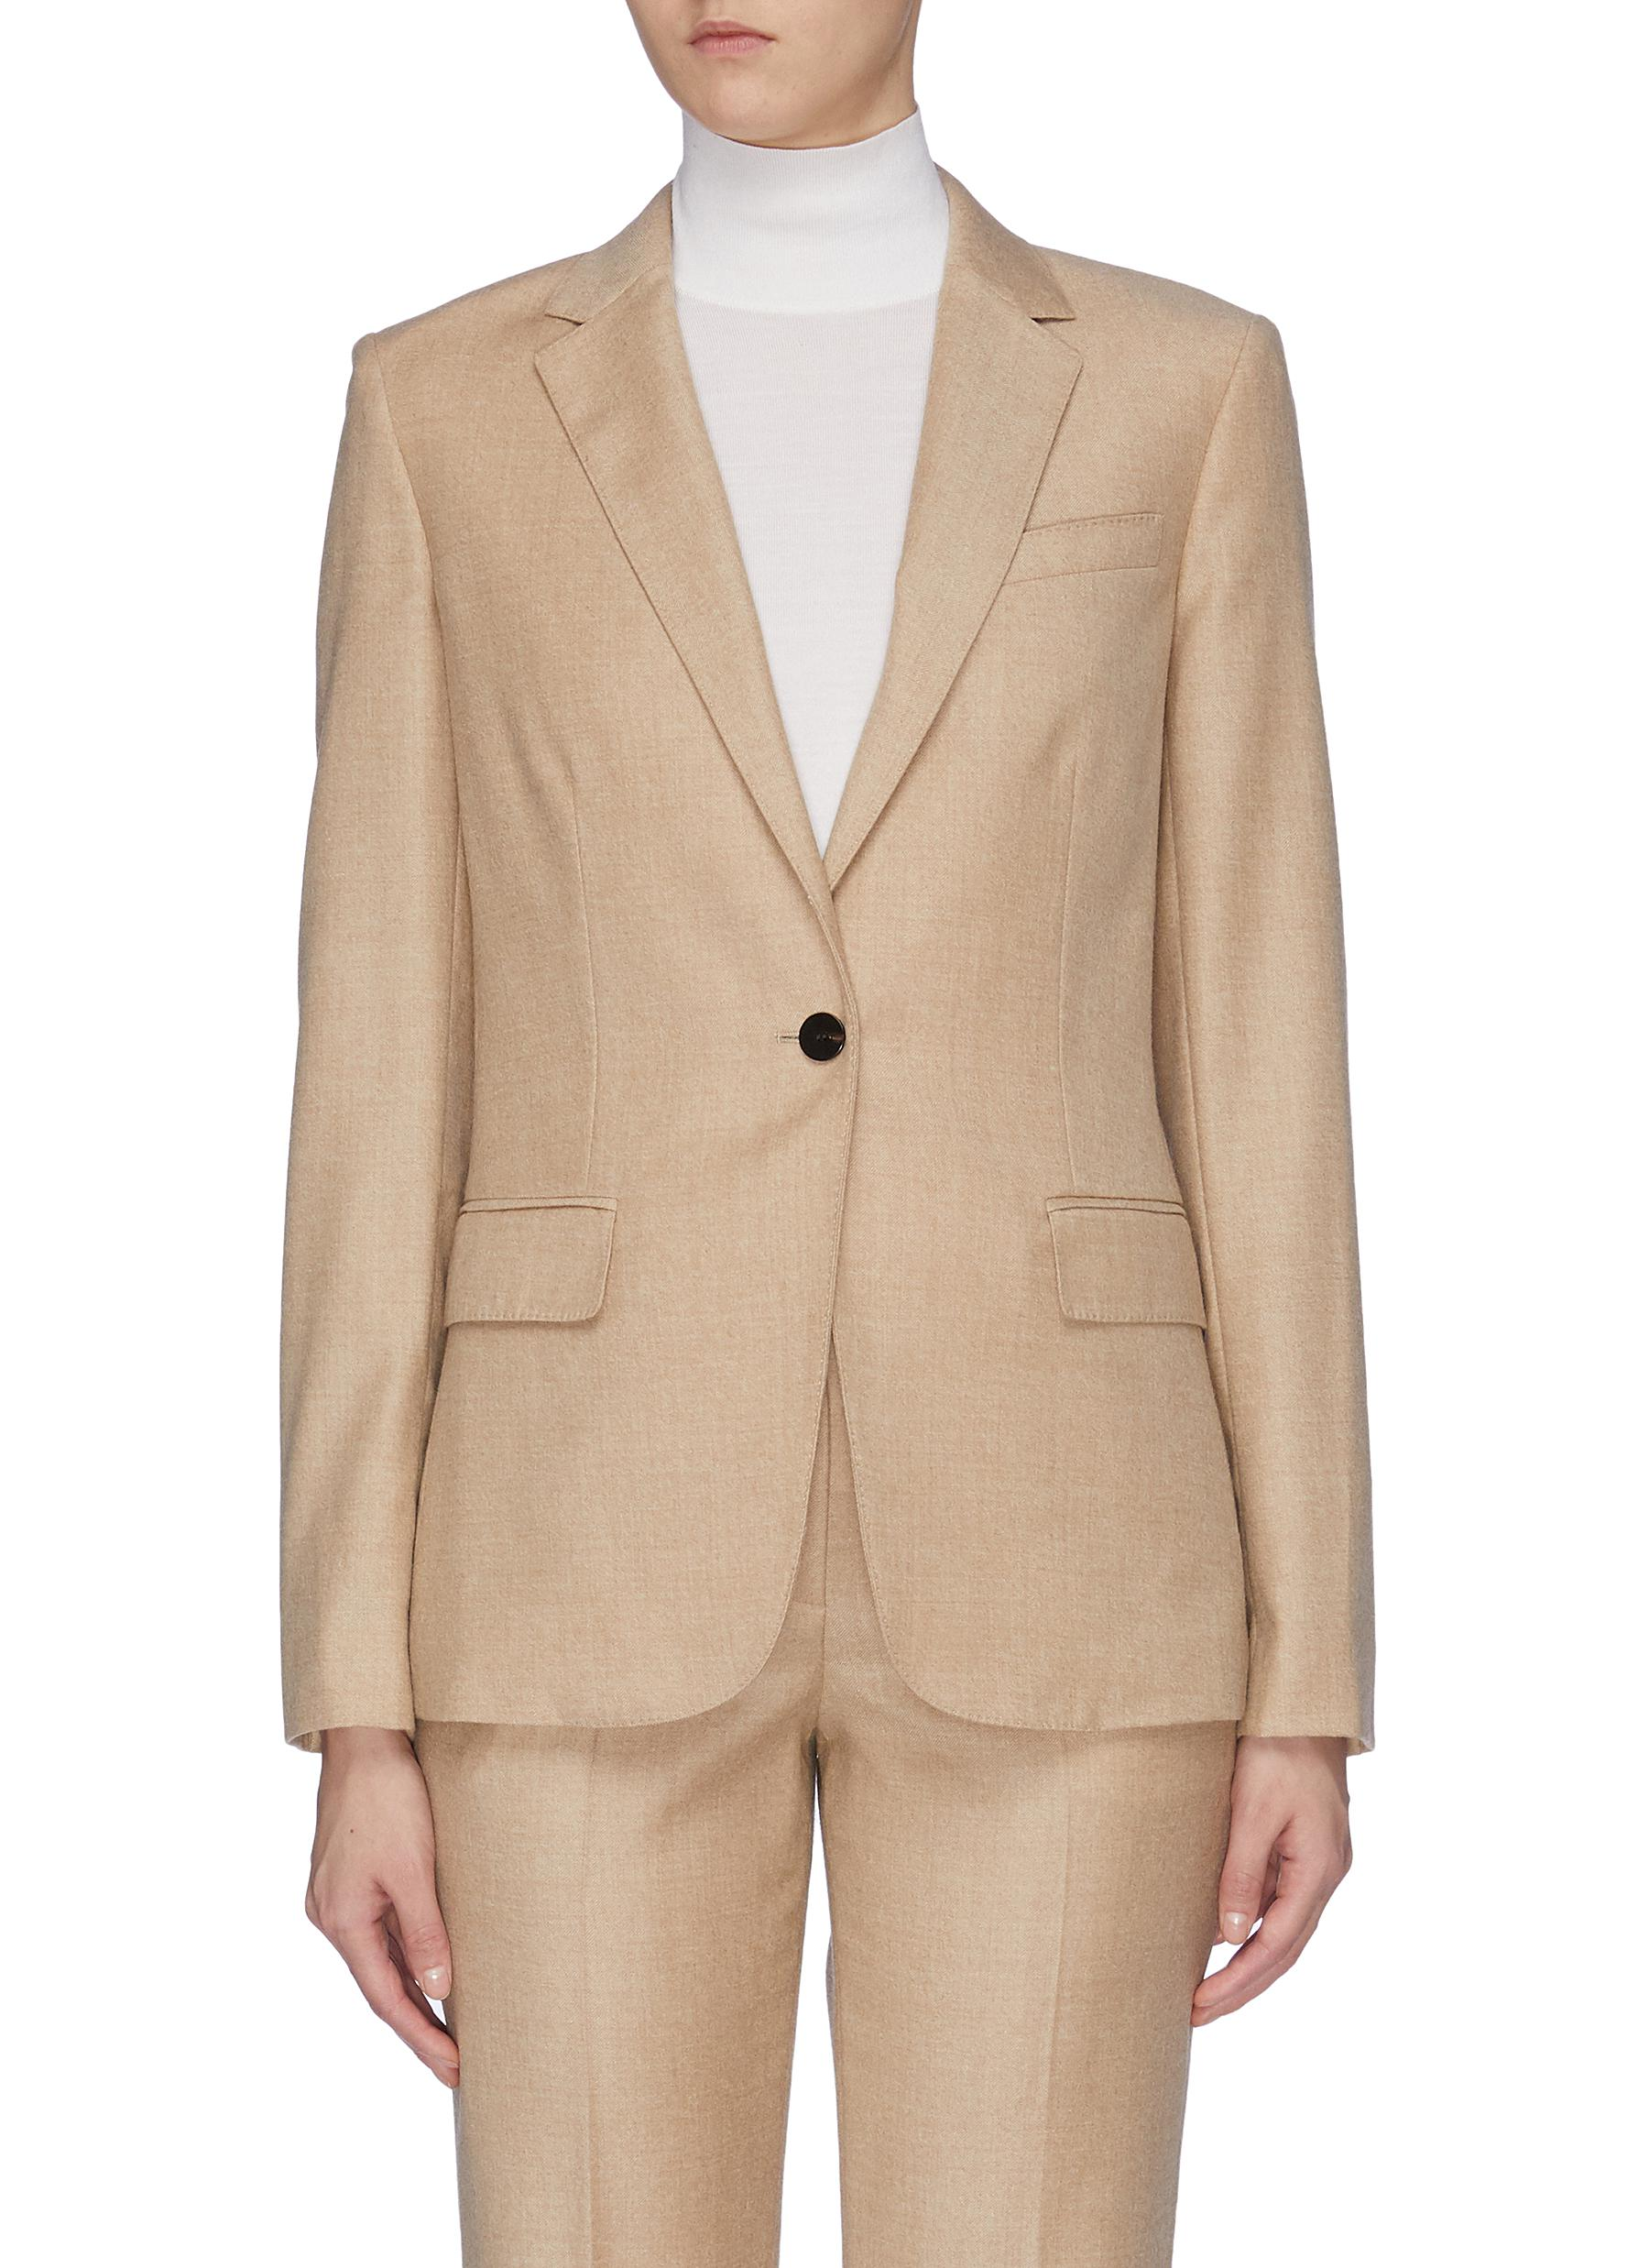 Staple peaked lapel crepe blazer by Theory